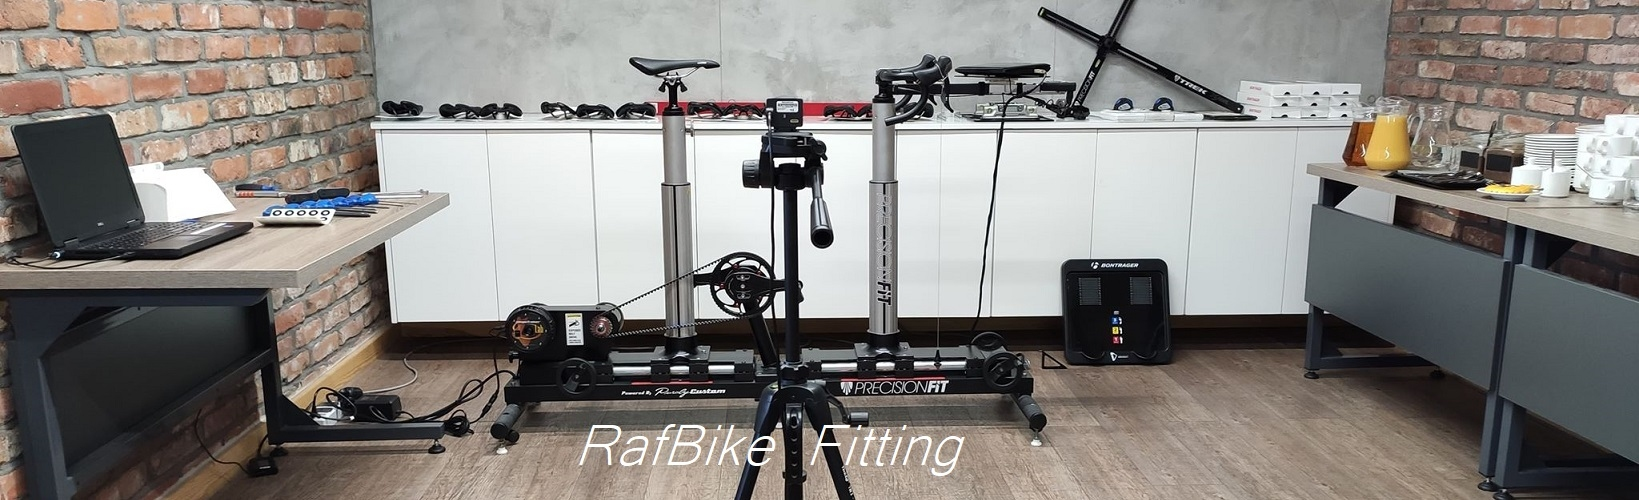 RafBike Fitting